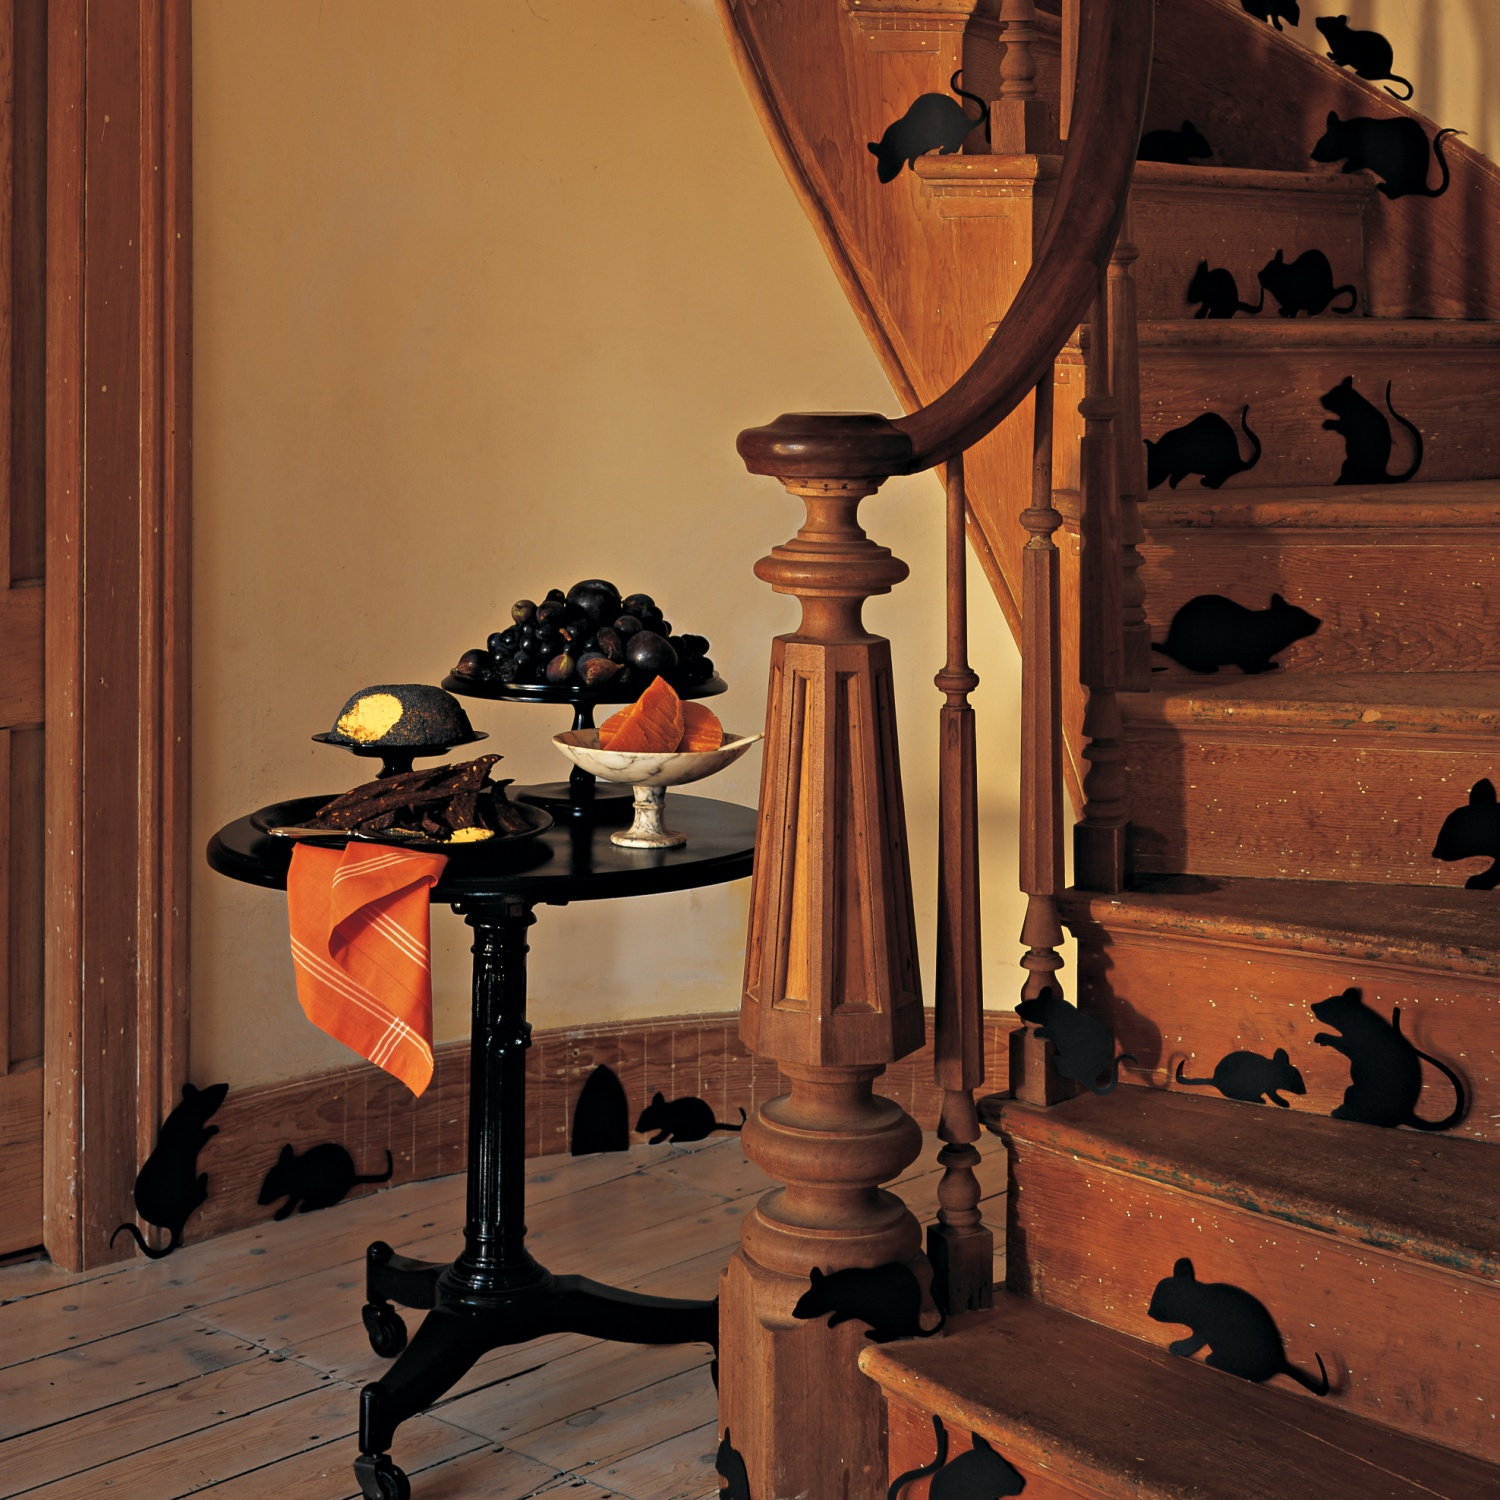 lots-of-fake-mice-on-staircase-idea-plus-round-console-table-with-black-grapes-or-great-handmade-halloween-decoration-outside